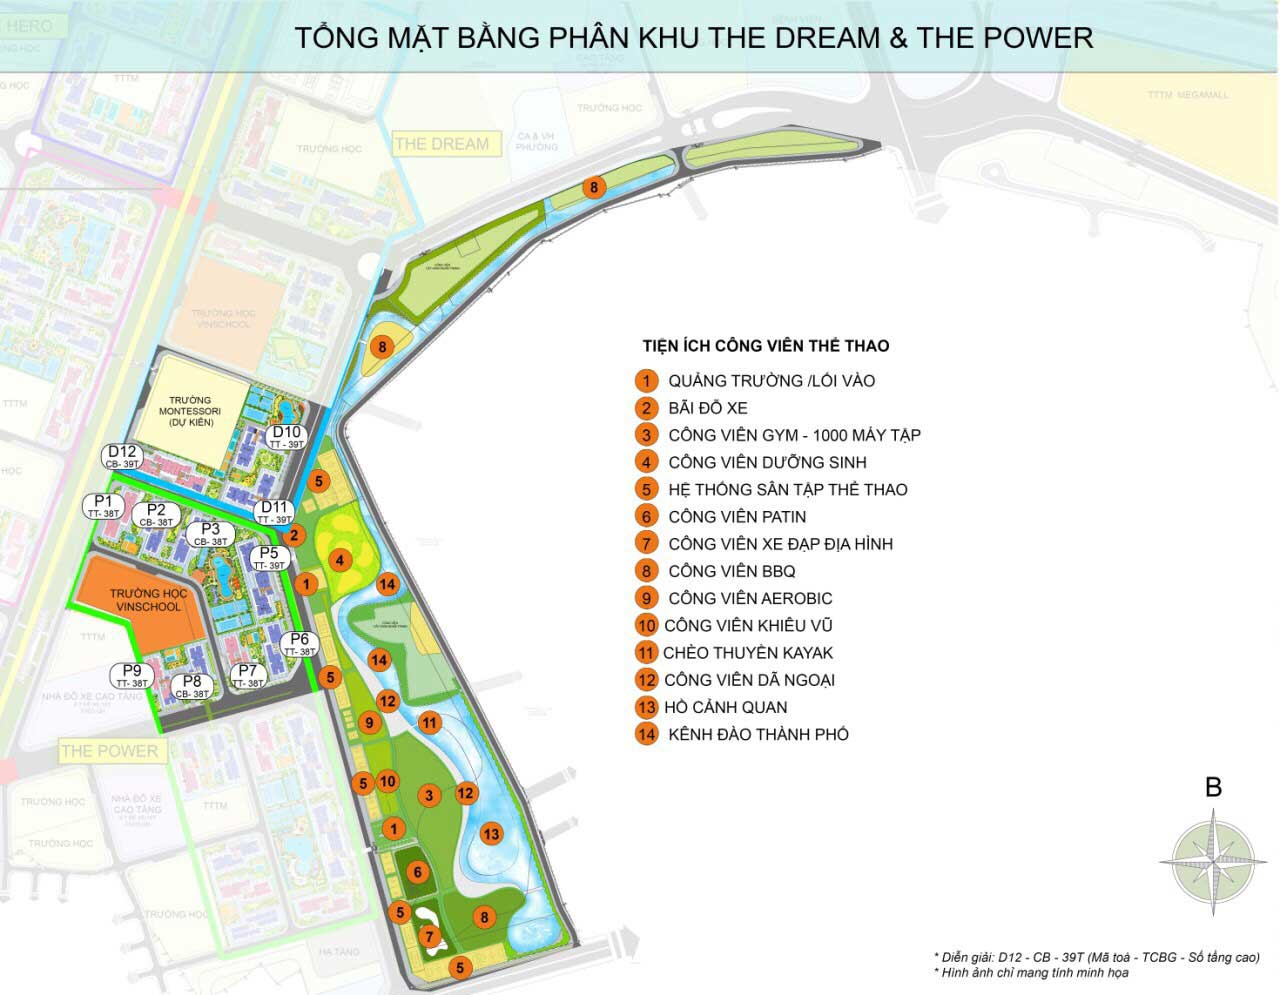 Vincity-Sportia-Phan-Khu-Power-Dream-01.jpg